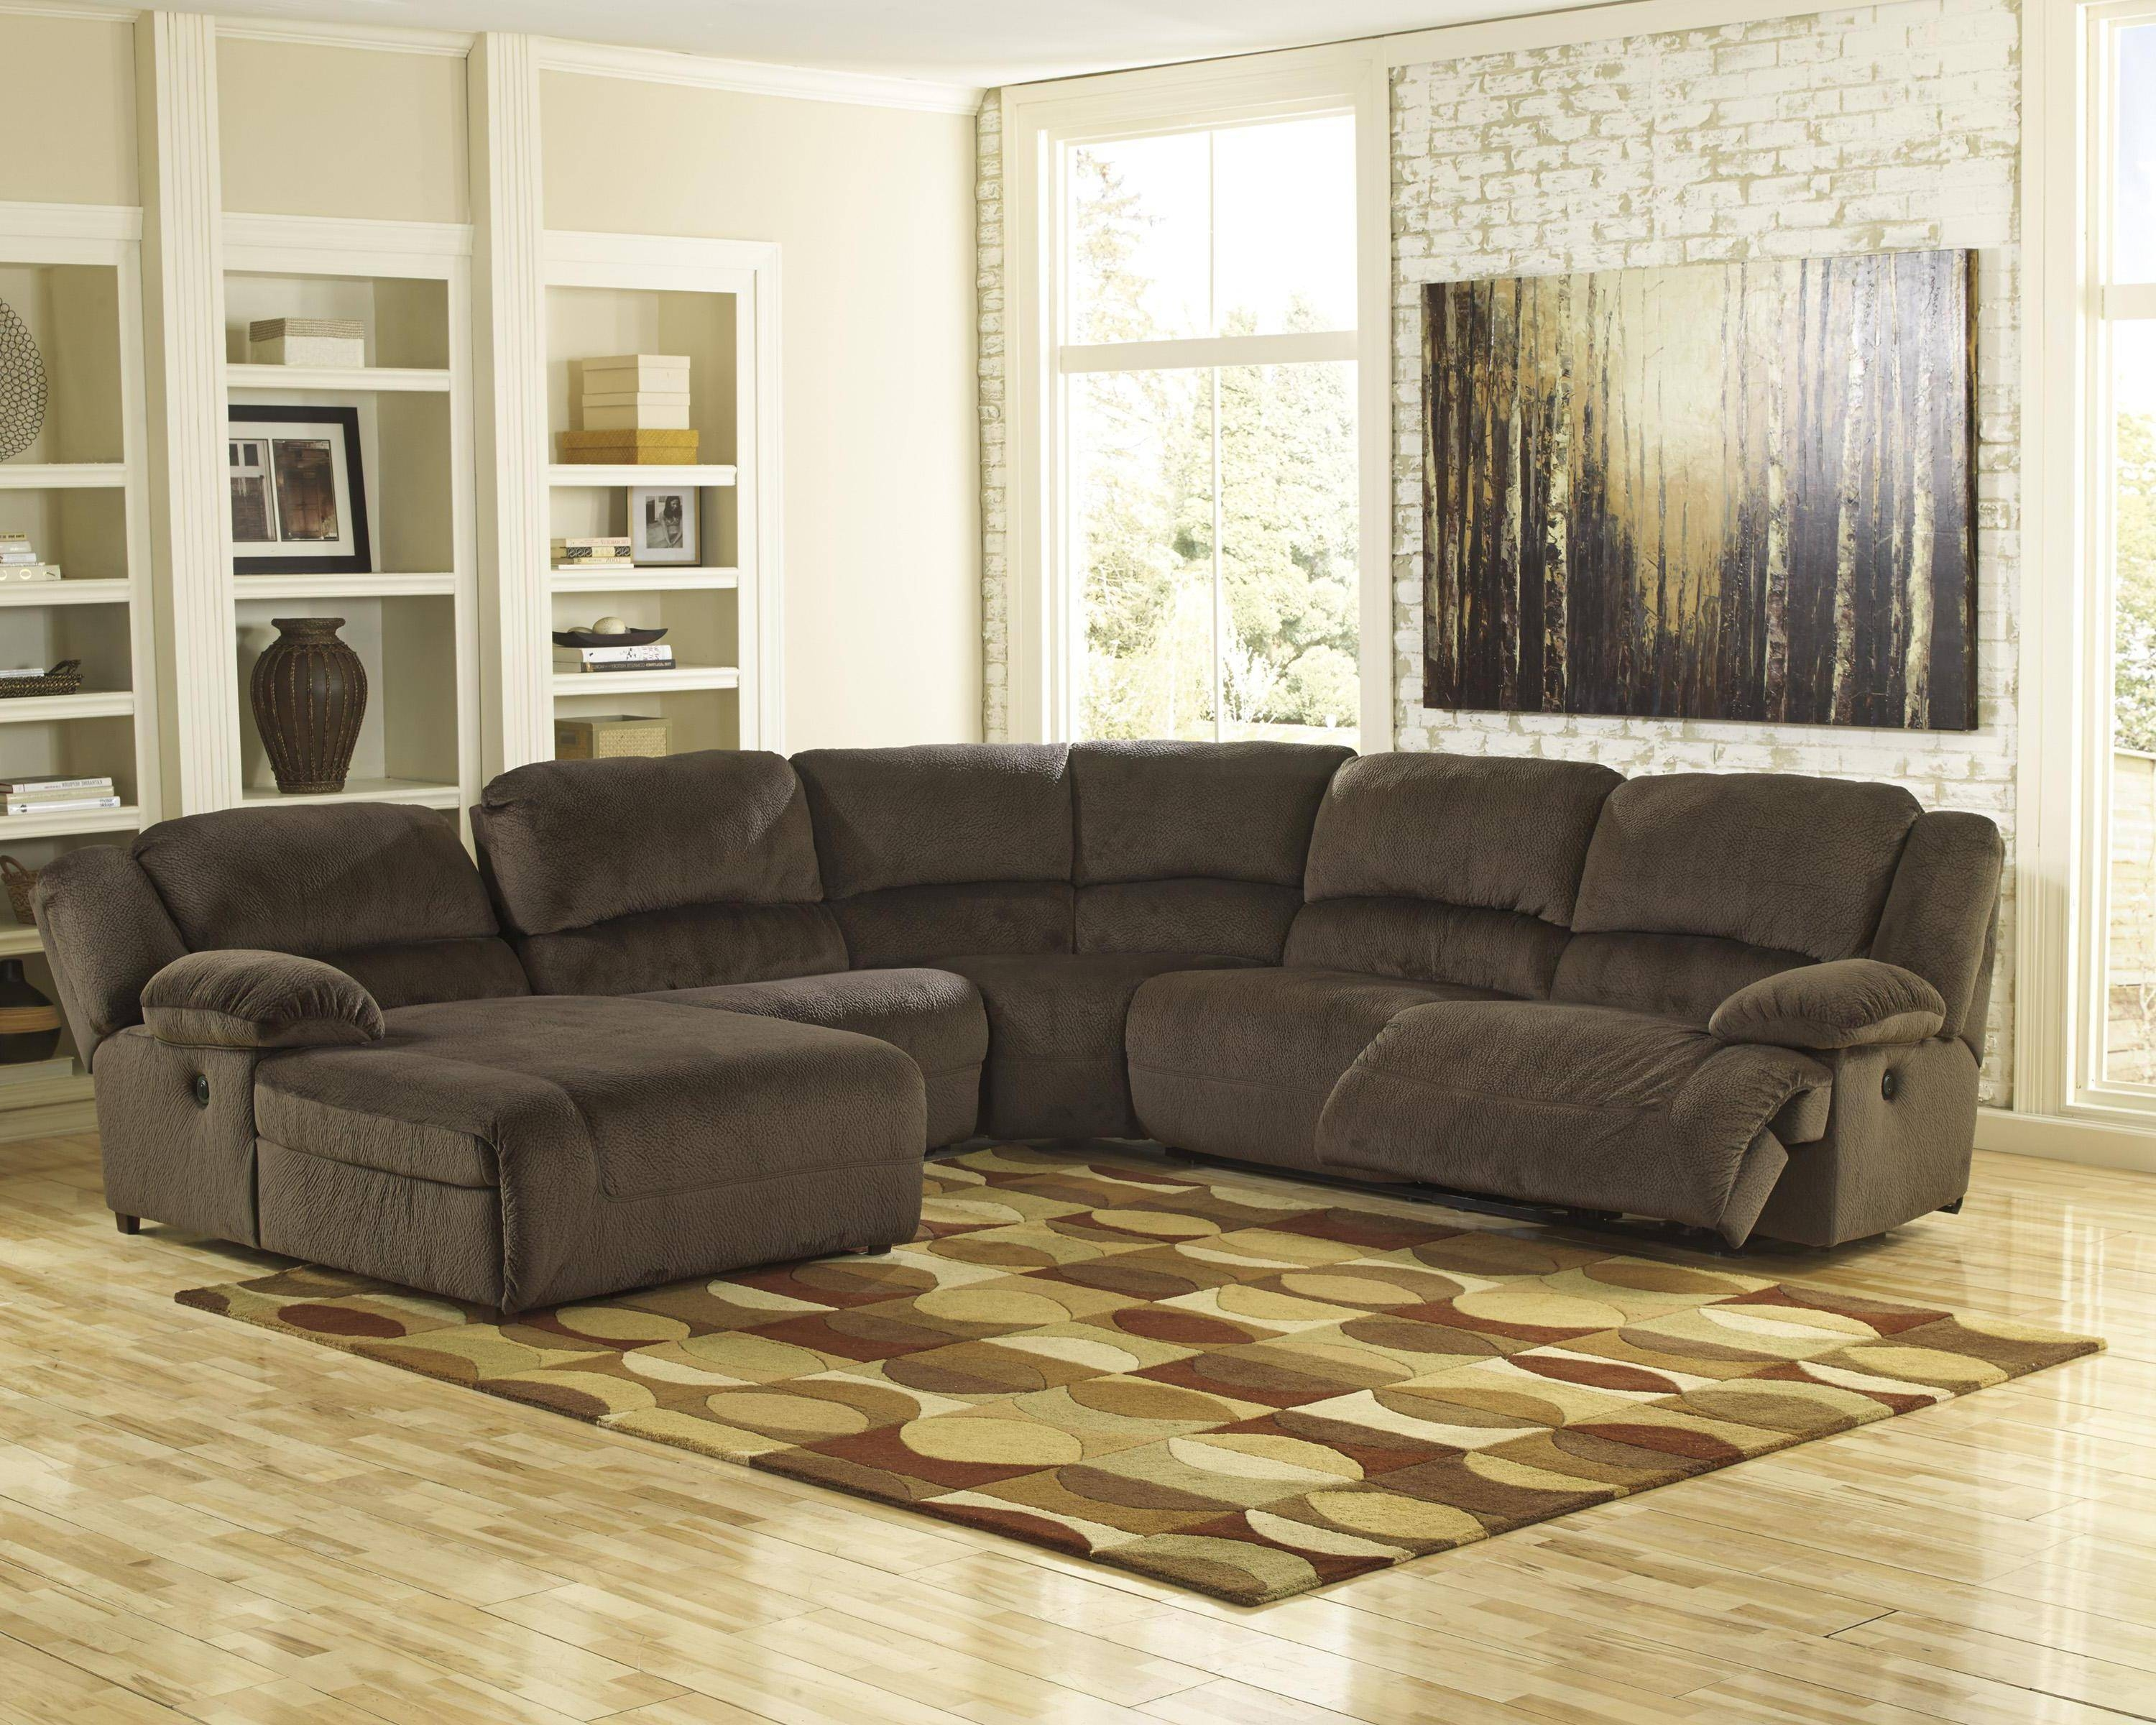 2017 Popular Signature Design Sectional Sofas